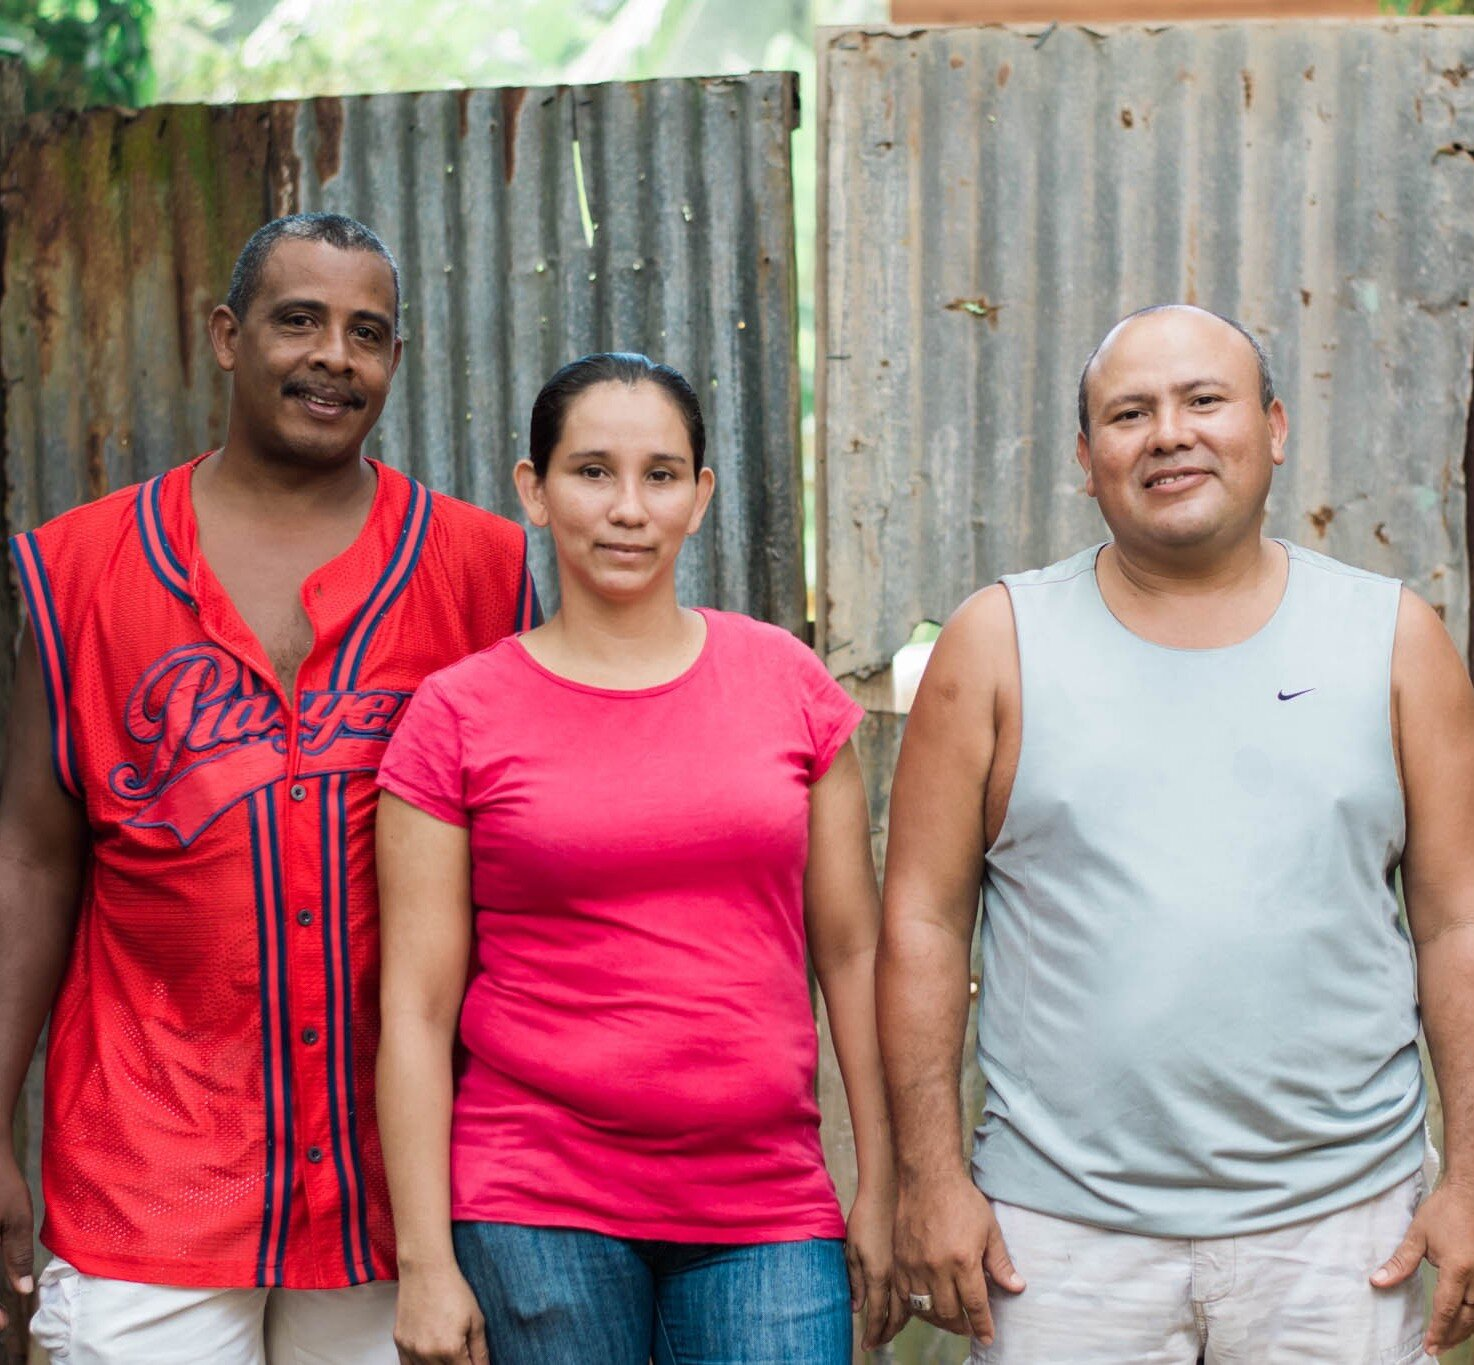 PCI's POSsibilities Project in Puerto Cabezas, Nicaragua - PHOTOGRAPHY — Documented the positive impact of the programs that fight the effects of drug trafficking in Nicaragua.